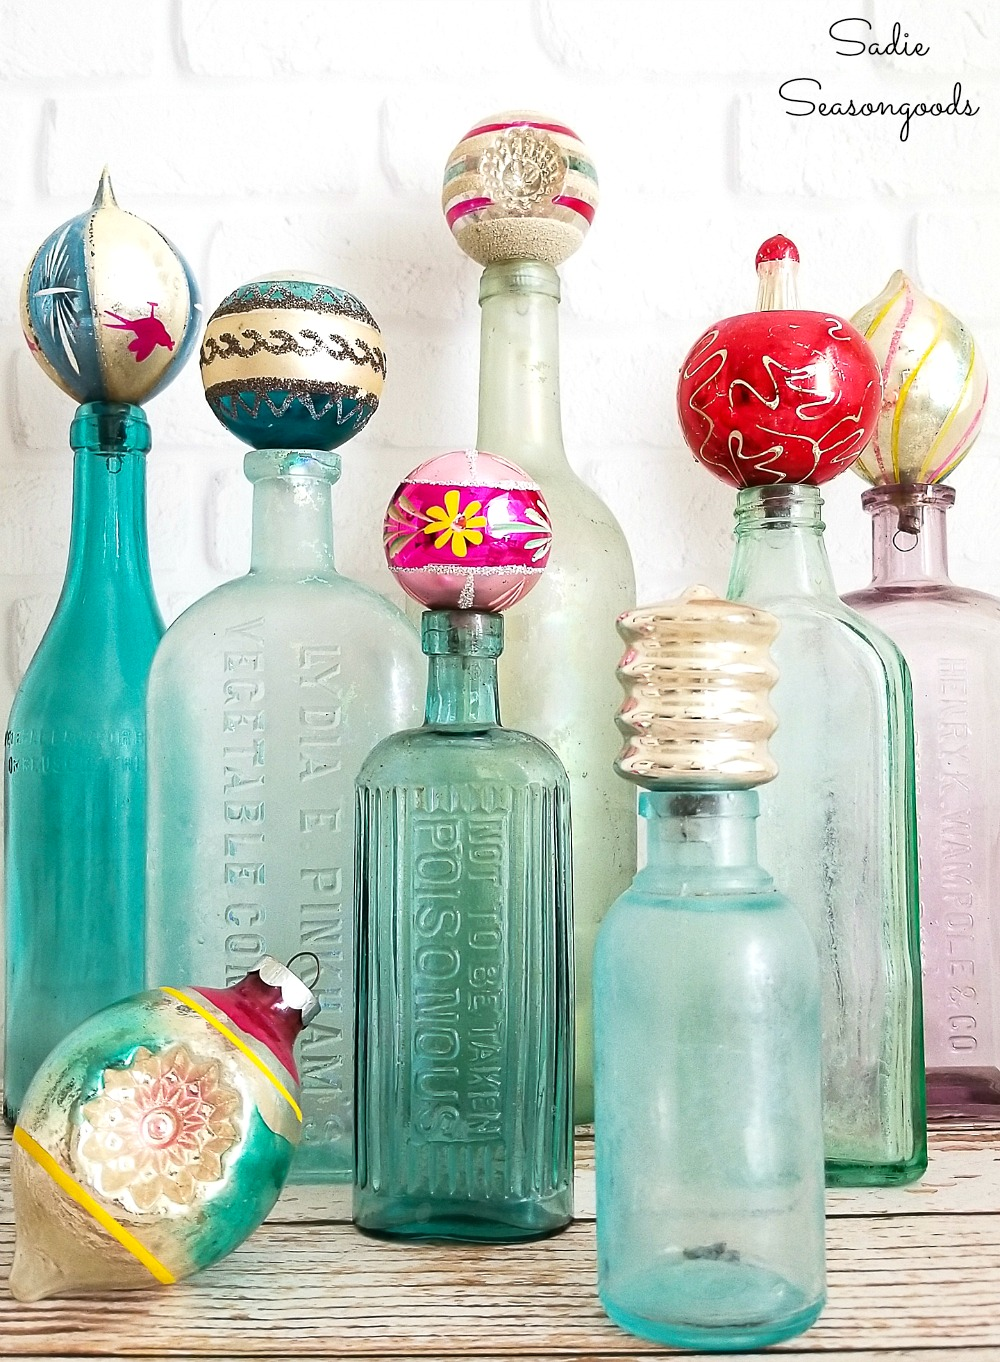 Retro Christmas Decorations with vintage Christmas ornaments on antique bottles